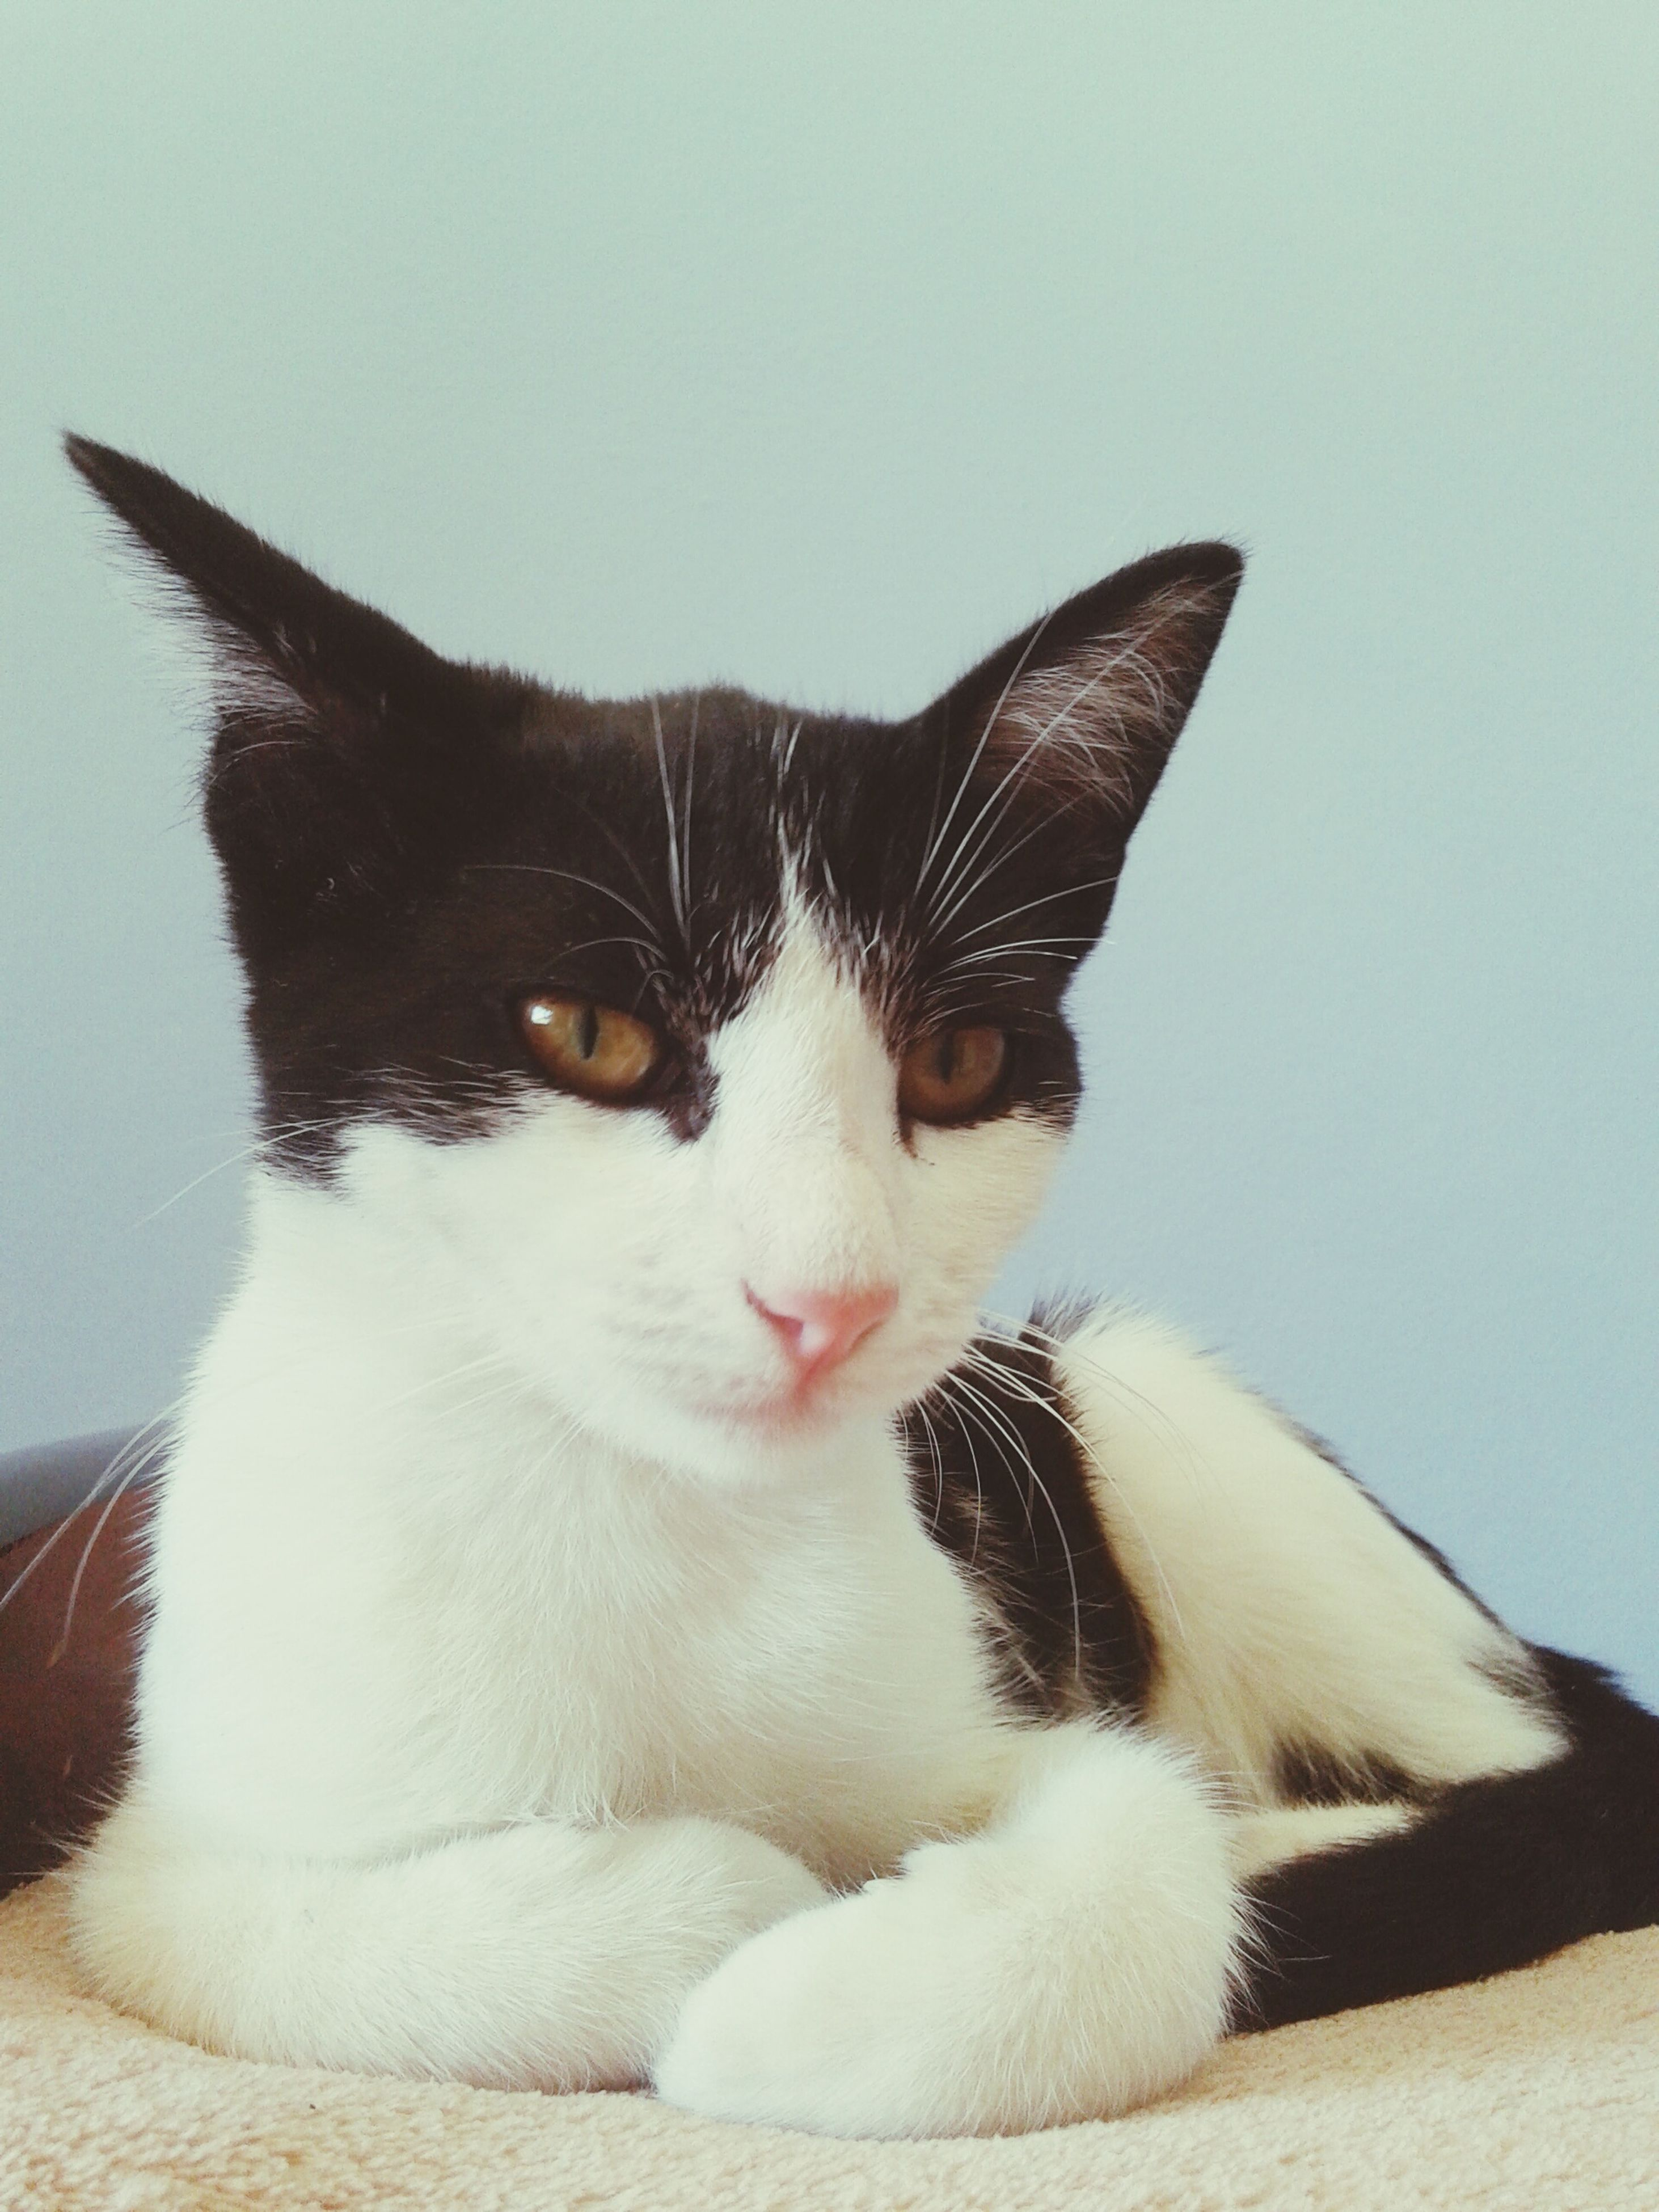 pets, domestic animals, one animal, animal themes, domestic cat, mammal, cat, feline, looking at camera, portrait, whisker, indoors, close-up, animal head, alertness, animal eye, no people, front view, sitting